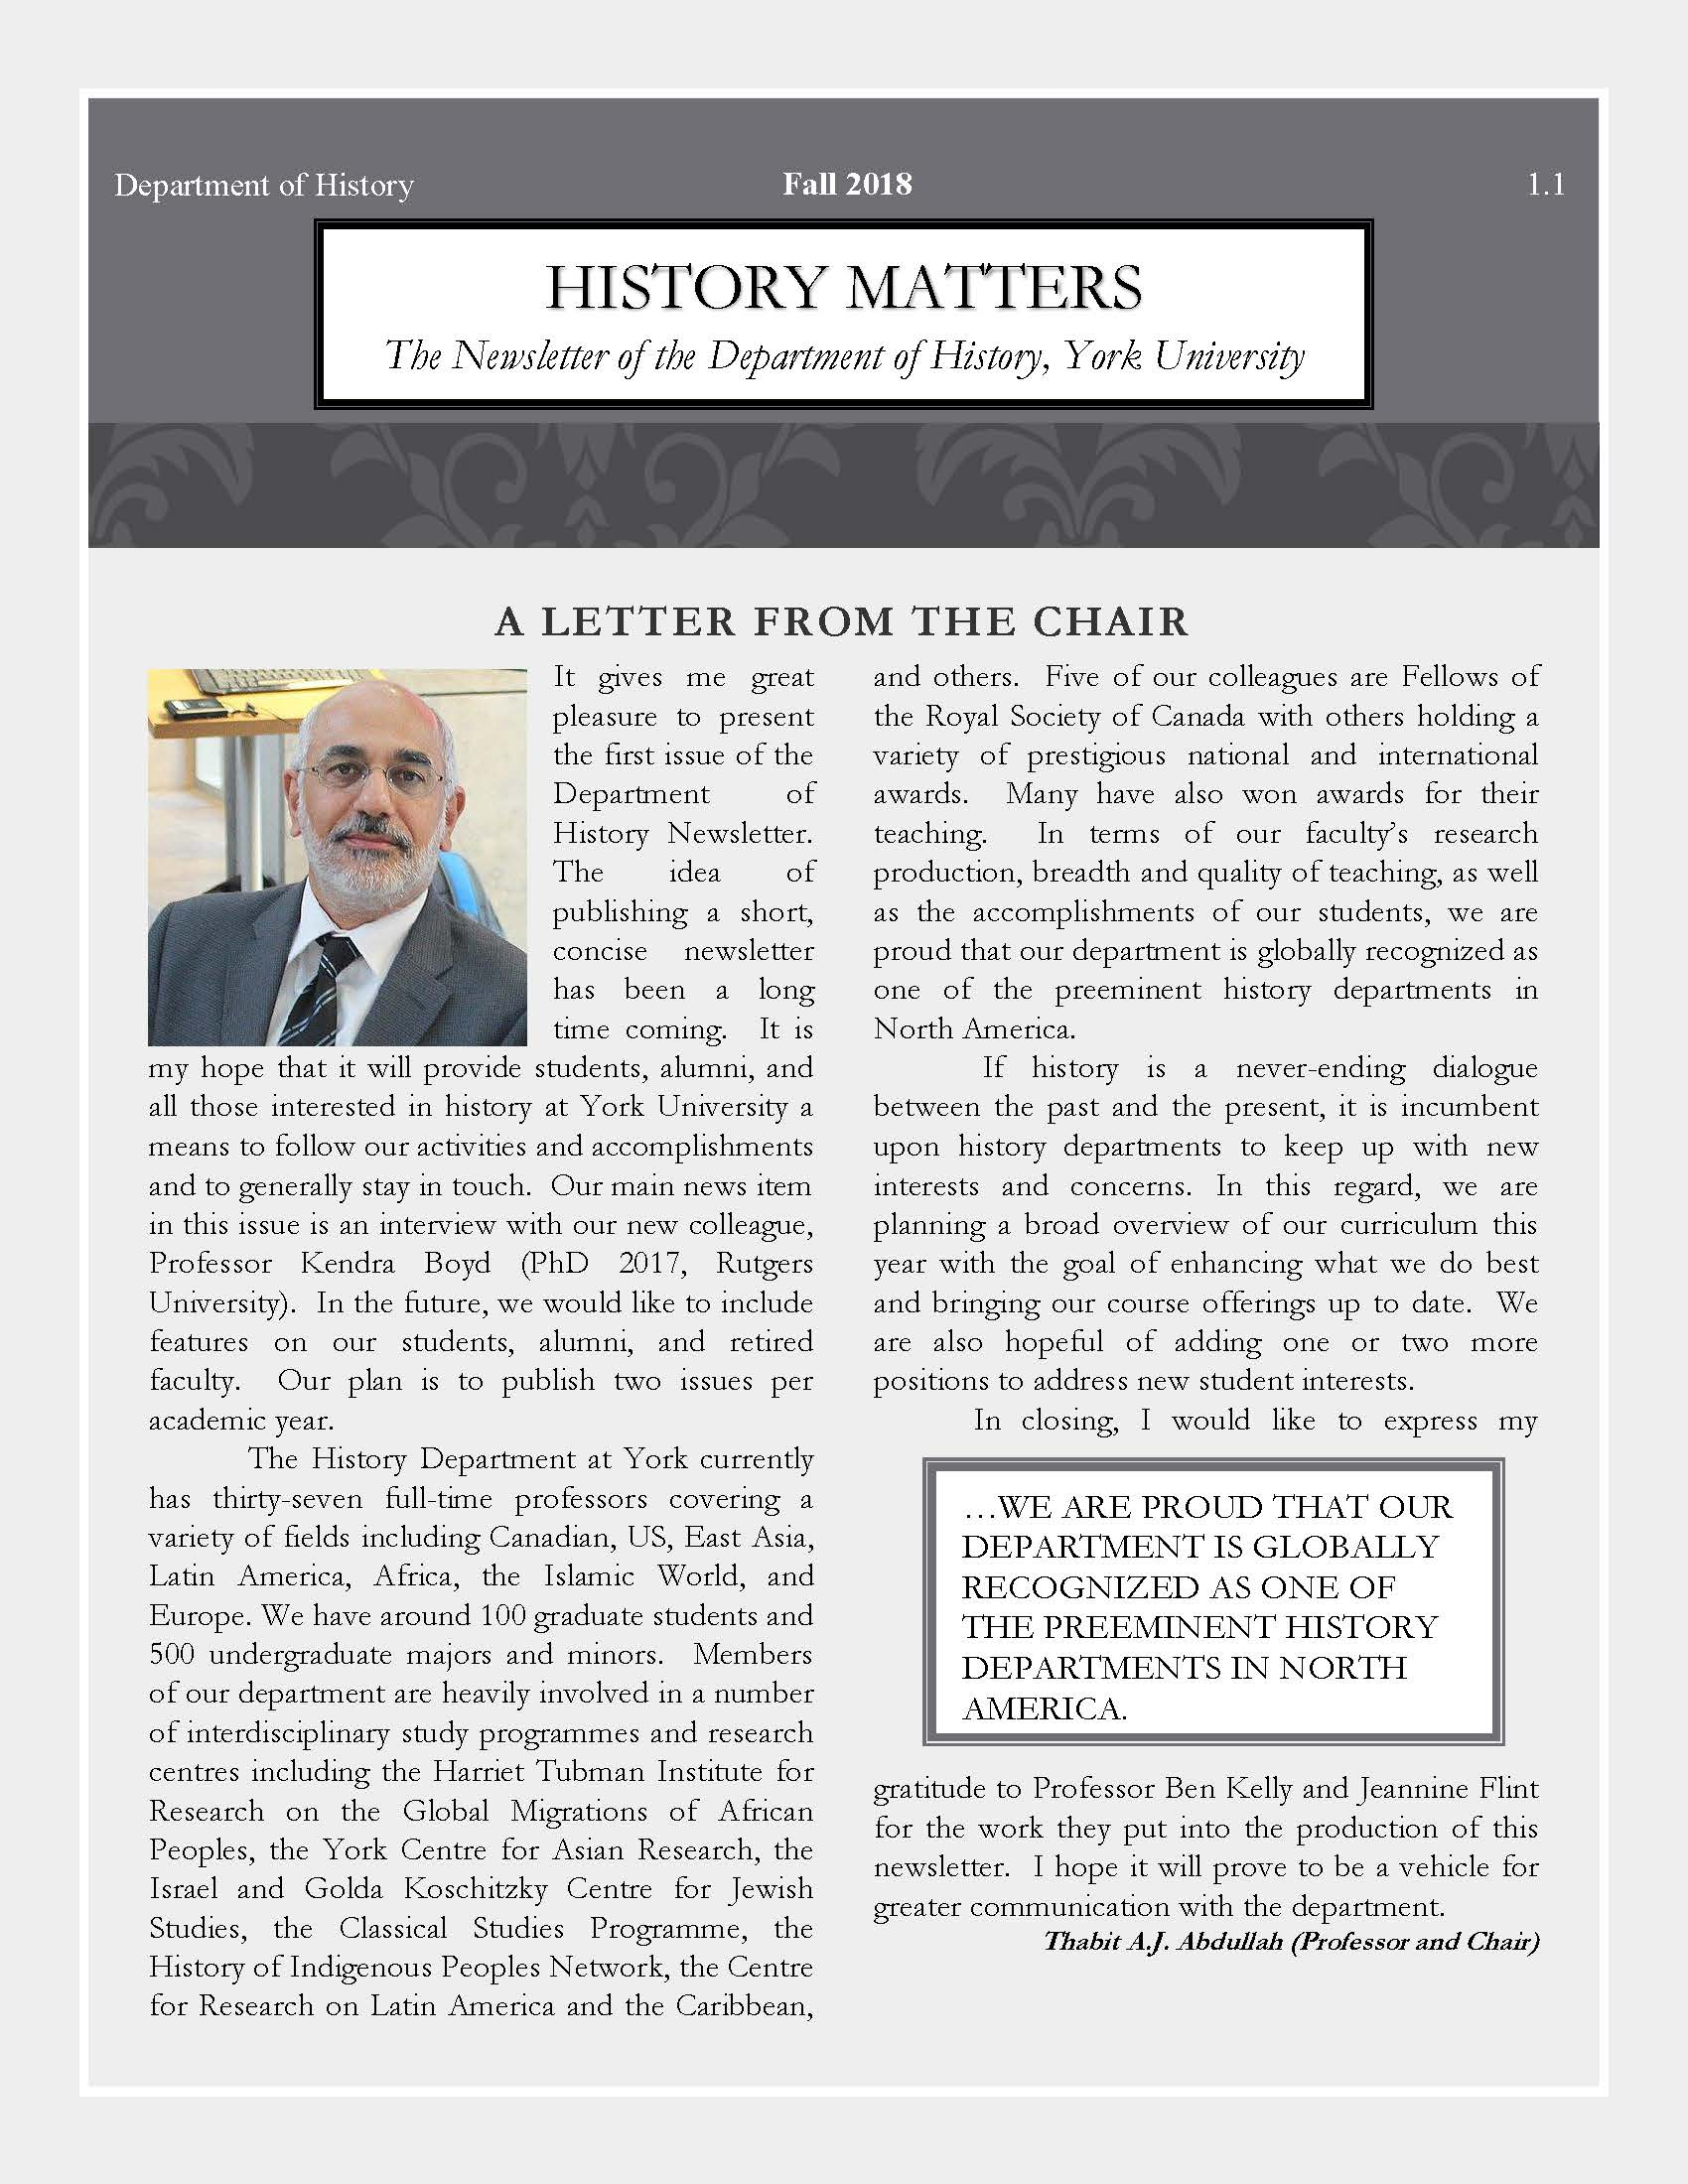 History Matters Newsletters - Fall 2018 Issue